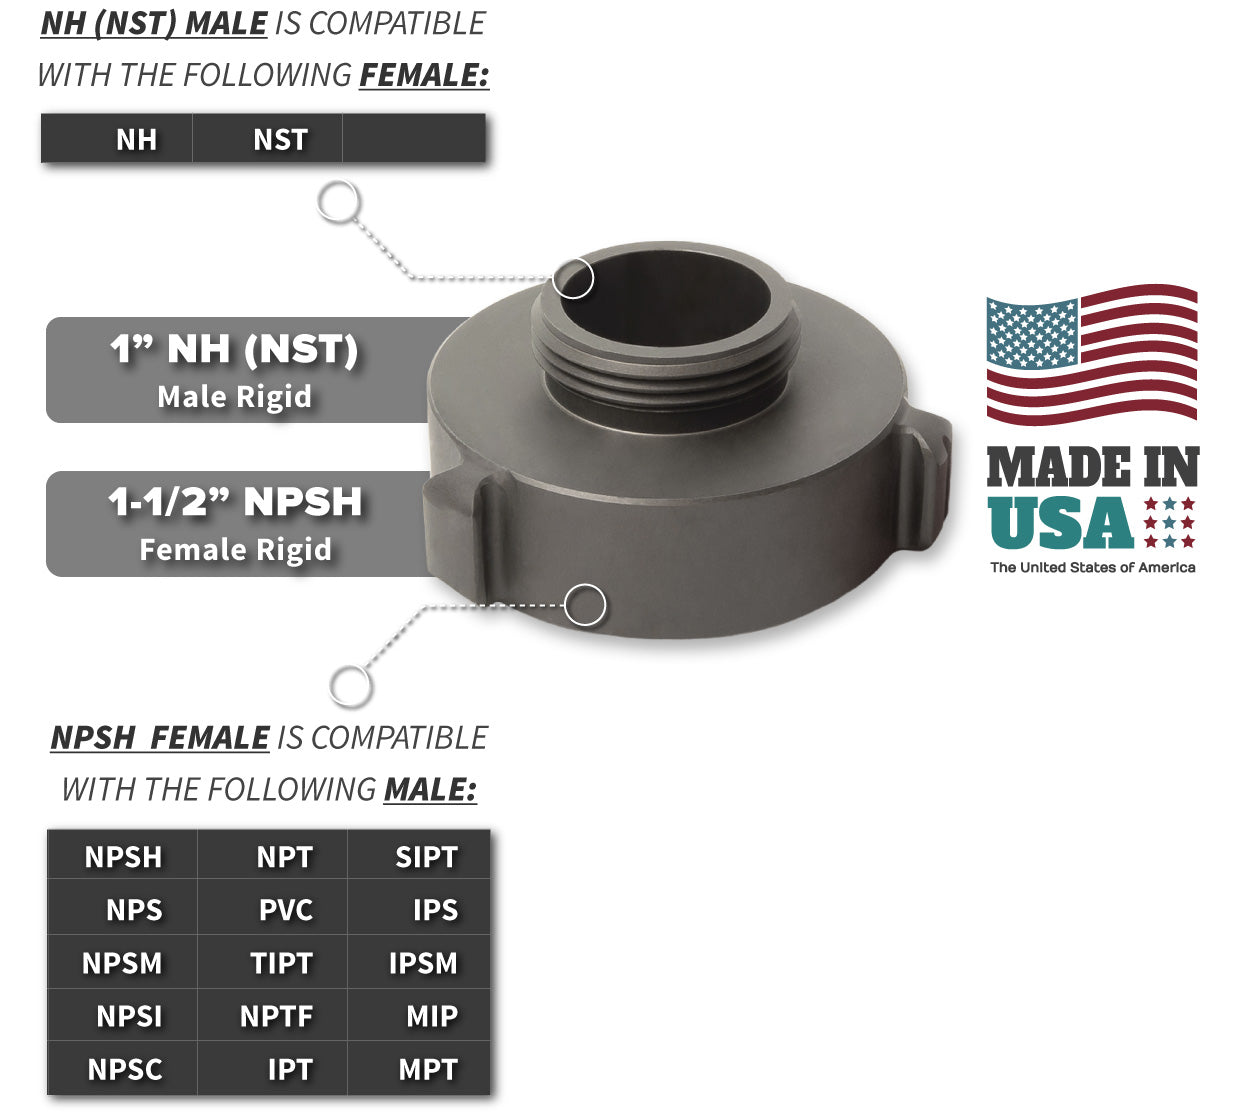 1.5 Inch NPSH Female x 1 Inch NH-NST Male Compatibility Thread Chart